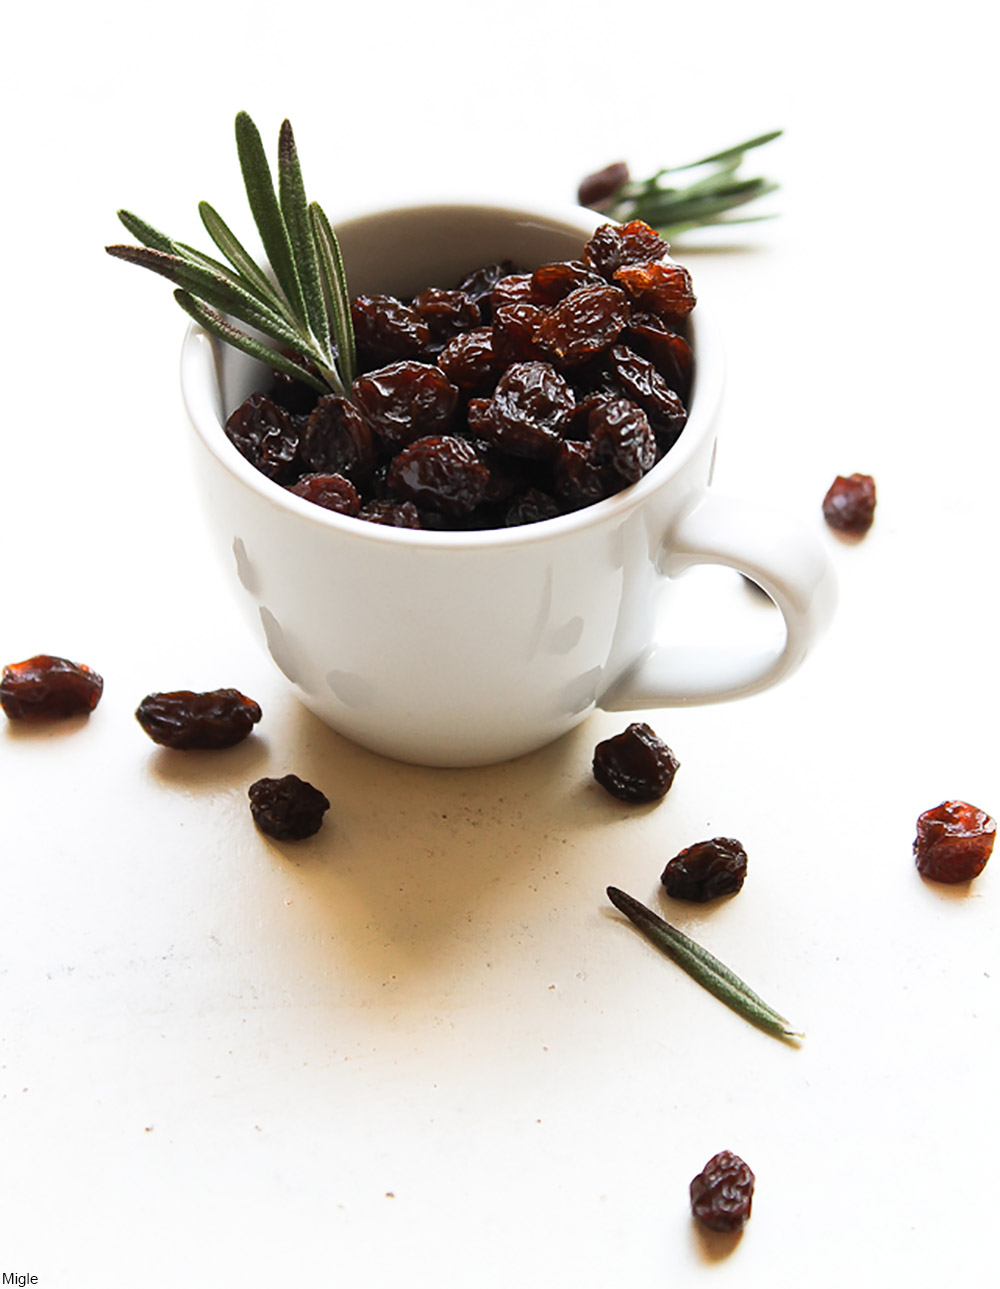 raisins and rosemary in a mug